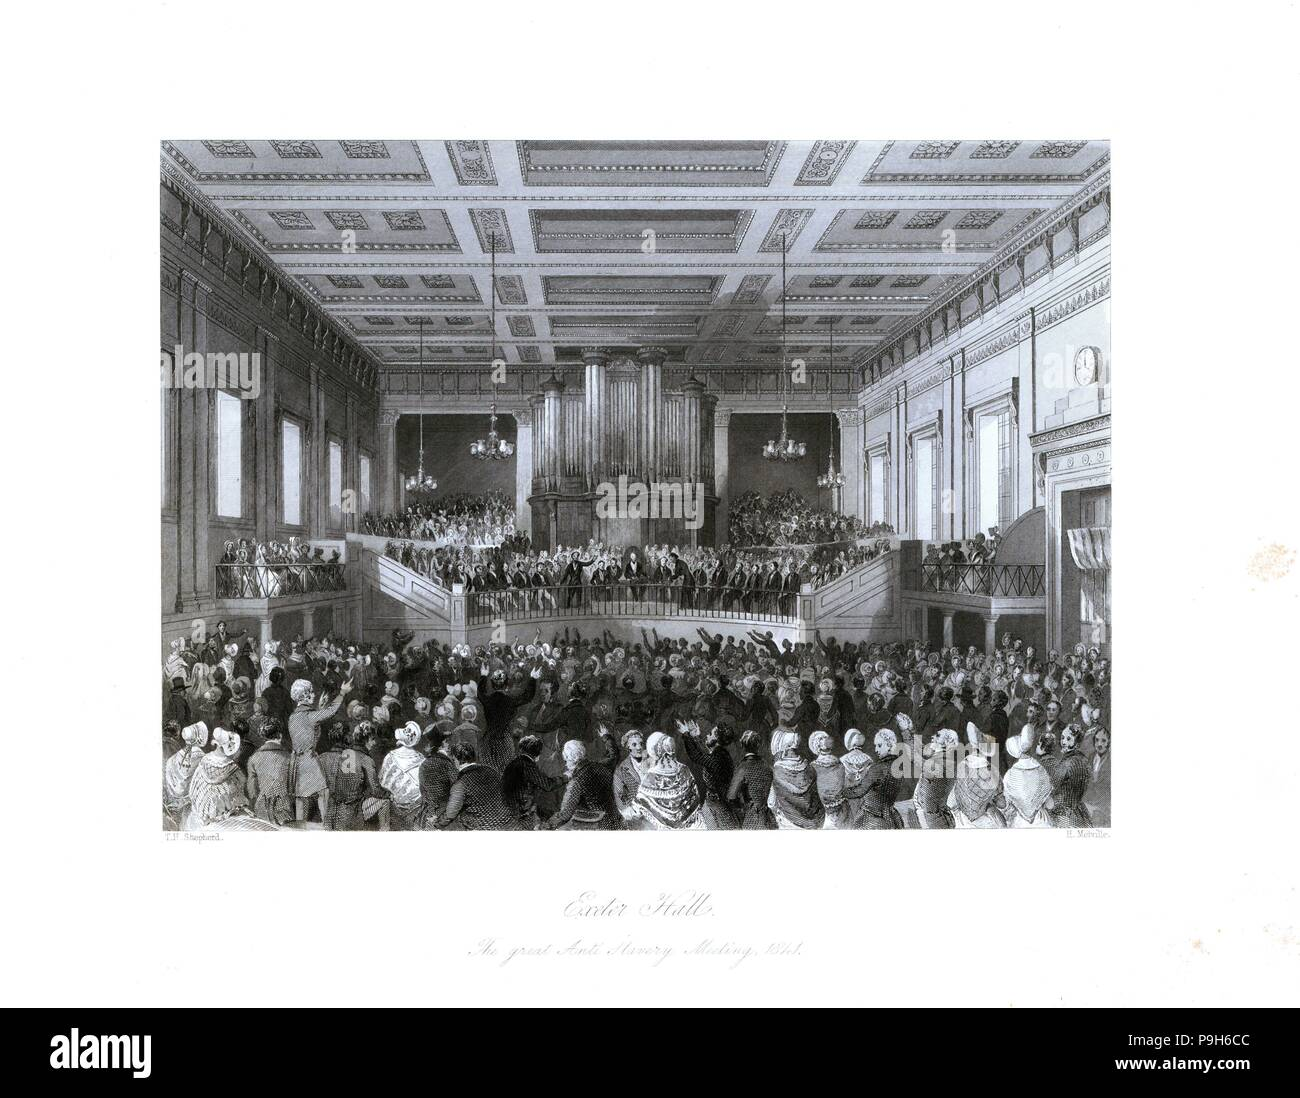 The great anti-slavery meeting at Exeter Hall, 1841. The Society of the Extinction of the Slave Trade meeting presided over by Prince Albert. Steel engraving by Henry Melville after an illustration by Thomas Hosmer Shepherd from London Interiors, Their Costumes and Ceremonies, Joshua Mead, London, 1841. - Stock Image